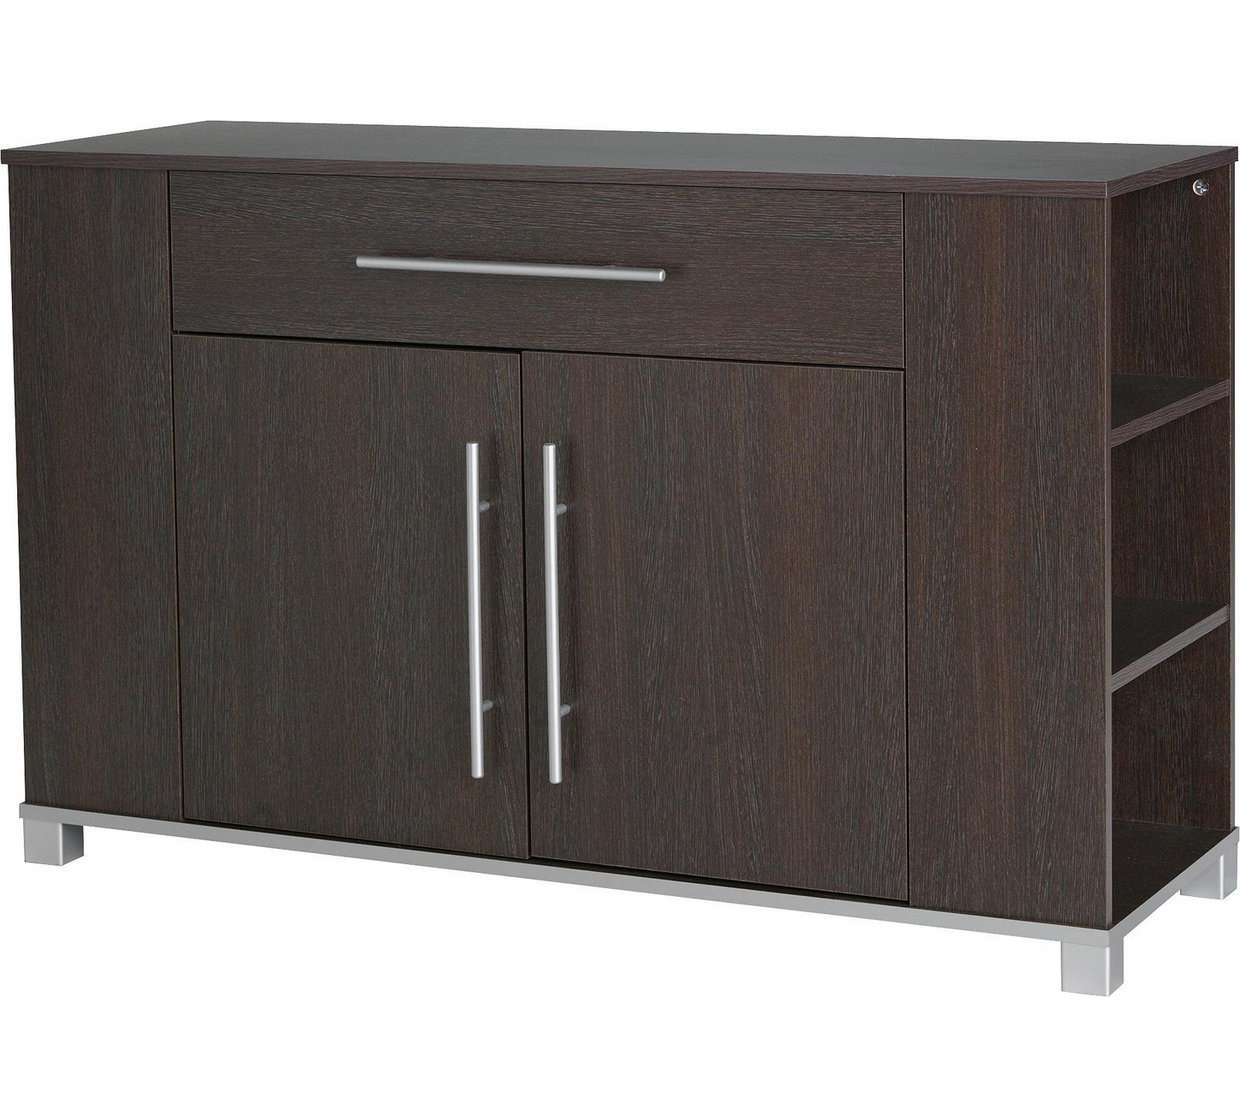 Marlow Wenge Furniture Sideboard Coffee Table Tv Stand Media Intended For Sideboard Tv Stands (View 6 of 20)